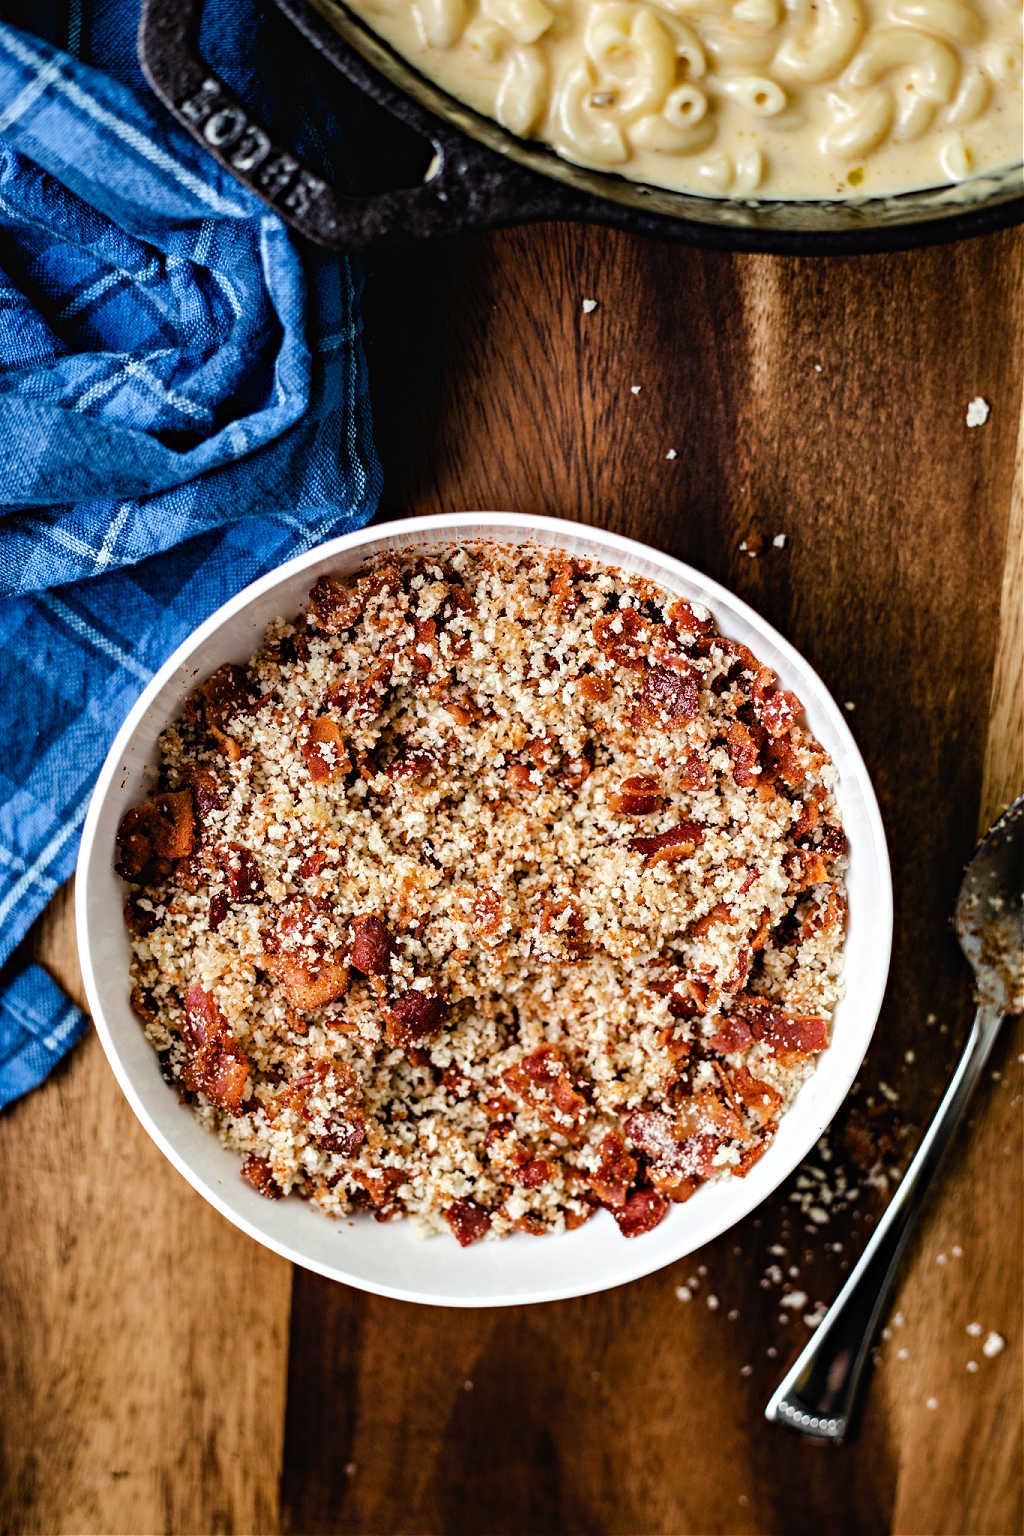 a bowl of bacon and panko crumb topping for smoked mac and cheese on a wooden table.